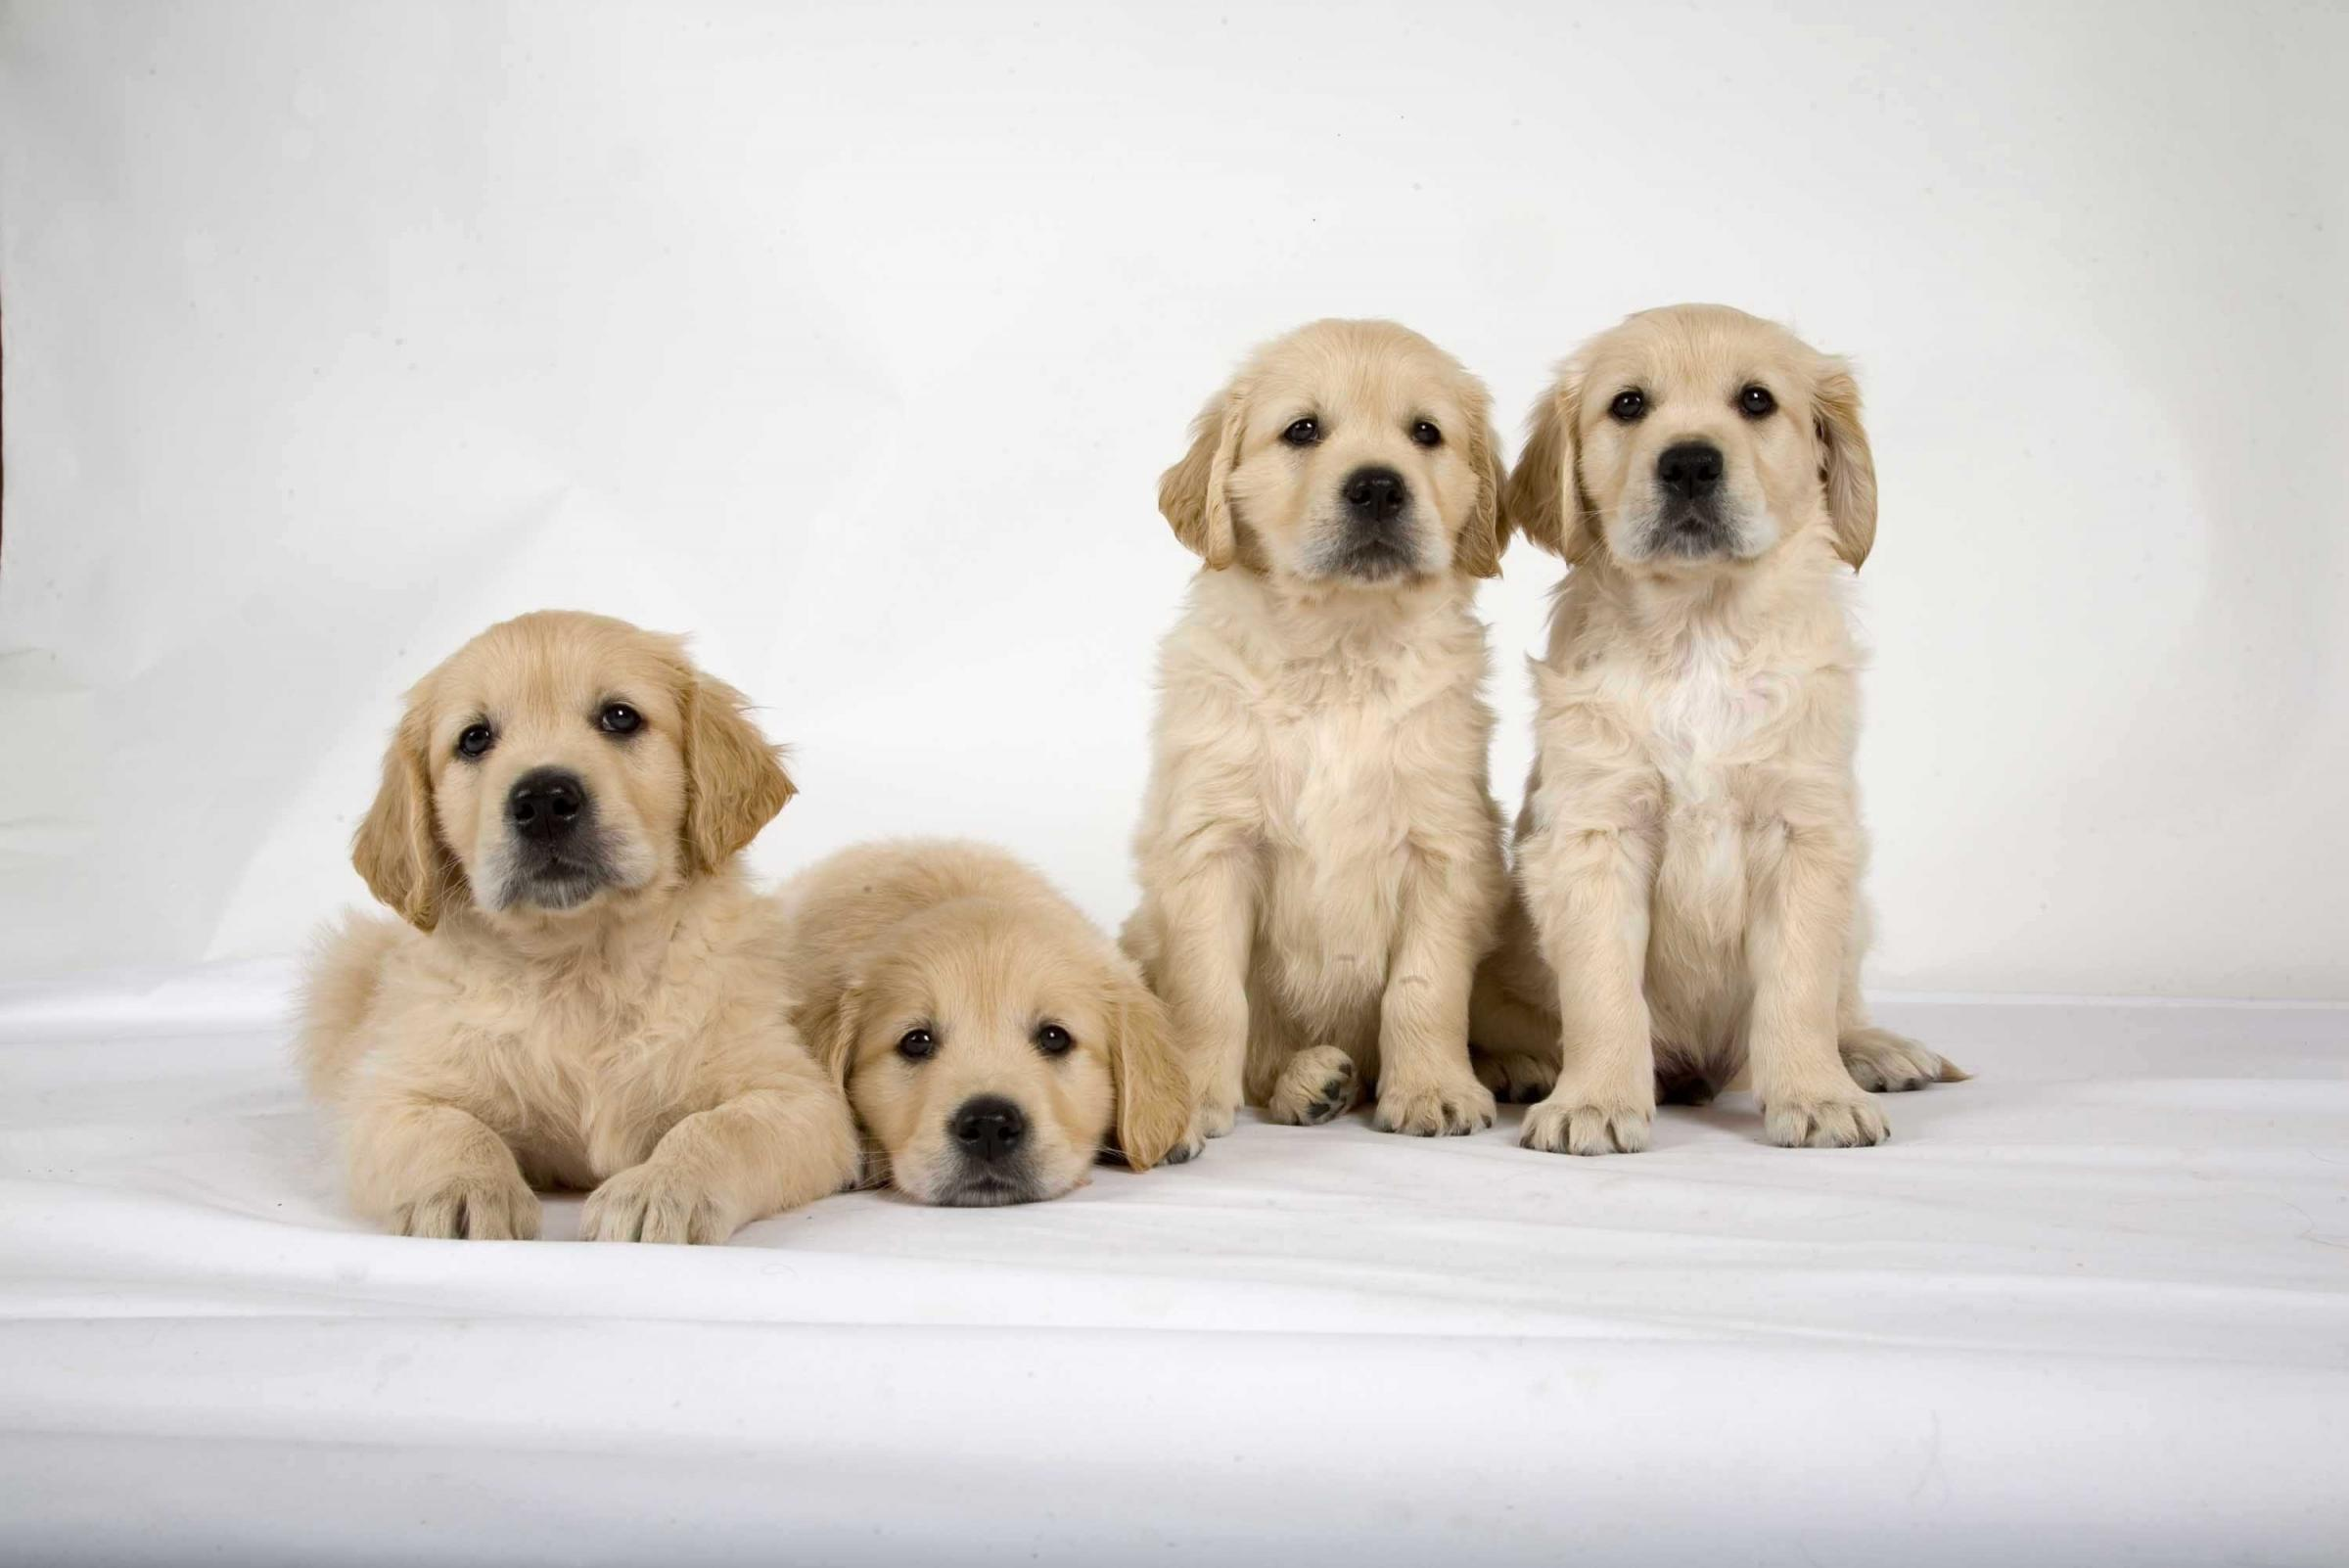 Guide dog puppies ready to be trained